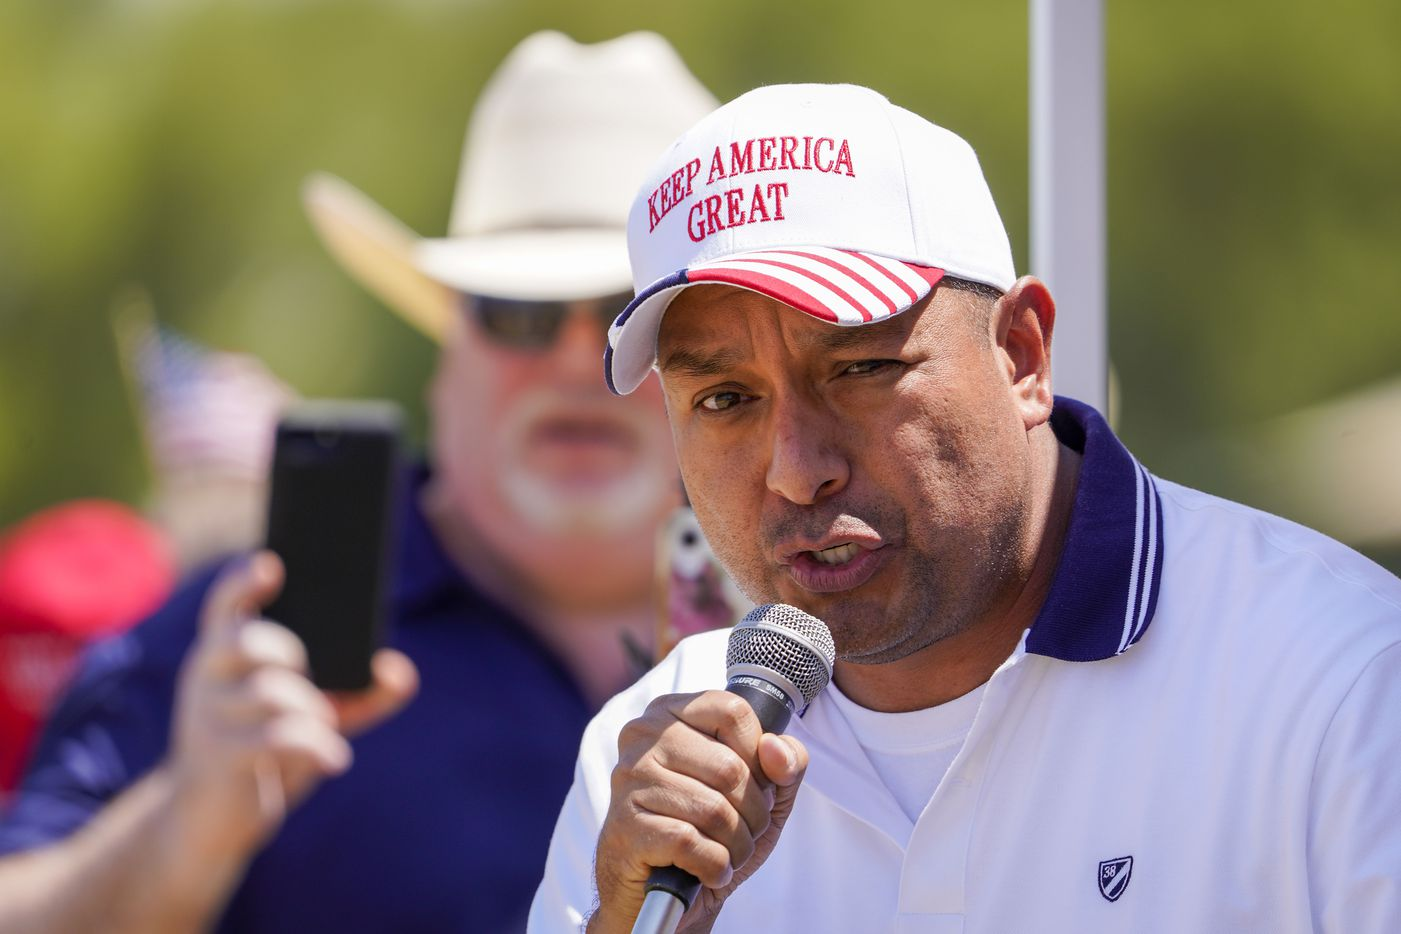 Fabian Cordova Vasquez, candidate for the U.S. House of Representatives 33rd Congressional District, addresses supporters of President Donald Trump during a campaign rally and boat parade at Oak Grove Park on Grapevine Lake on Saturday, Aug. 15, 2020.